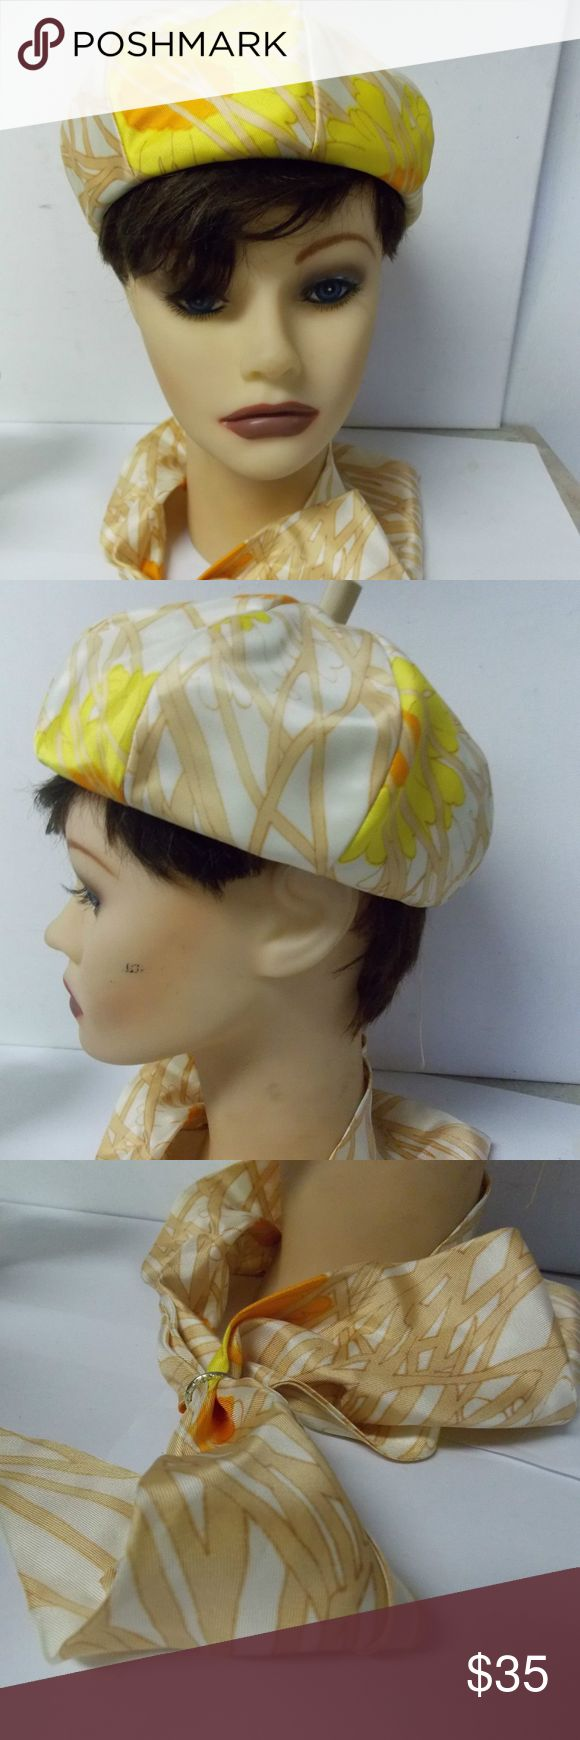 """Gimbels Mr Martin Beret Style Hat & Matching Scarf True Vintage   Union Label, USA Made  Tag inside Gimbels, and Mr. Martin  Matching beret style hat and scarf, scarf includes a ring   New/ Old stock      Measures 21 1/2  """" around, inside measurements        Very good , clean condition Gimbels/ Mr. Martin Accessories Hats"""